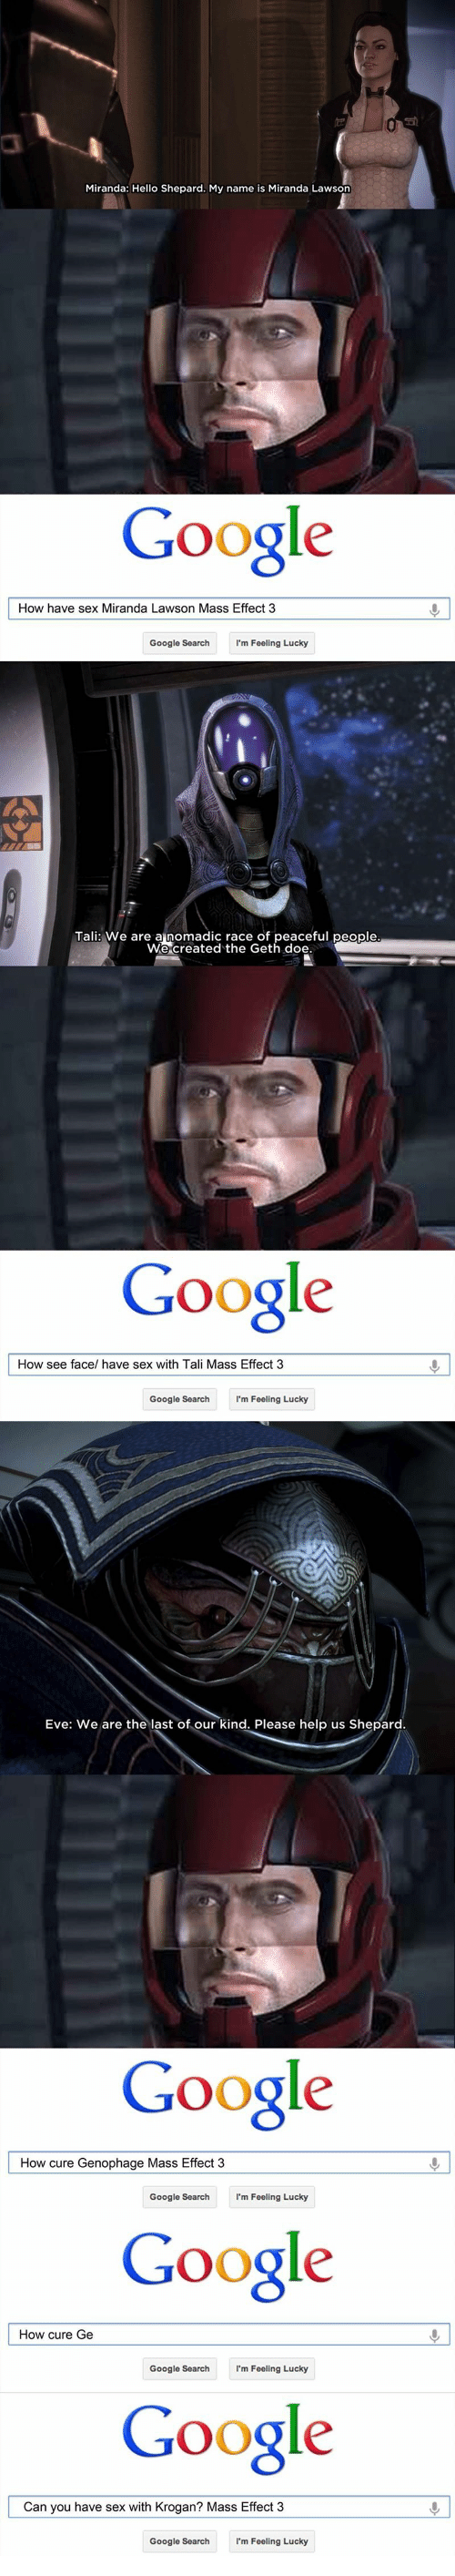 miranda lawson: Miranda: Hello Shepard. My name is Miranda Lawson  Google  How have sex Miranda Lawson Mass Effect 3  Google SearchI'm Feeling Lucky  Tali: We are ainomadic race of peaceful people  We created the Geth  Google  How see face/ have sex with Tali Mass Effect 3  Google Searchm Feeling Lucky  Eve: We are the last  Please help us Shepard.  Google  Google  Google  How cure Genophage Mass Effect 3  Google Search  I'm Feeling Lucky  How cure Ge  Google Searchm Feeling Lucky  Can you have sex with Krogan? Mass Effect 3  Google SearchIm Feeling Lucky